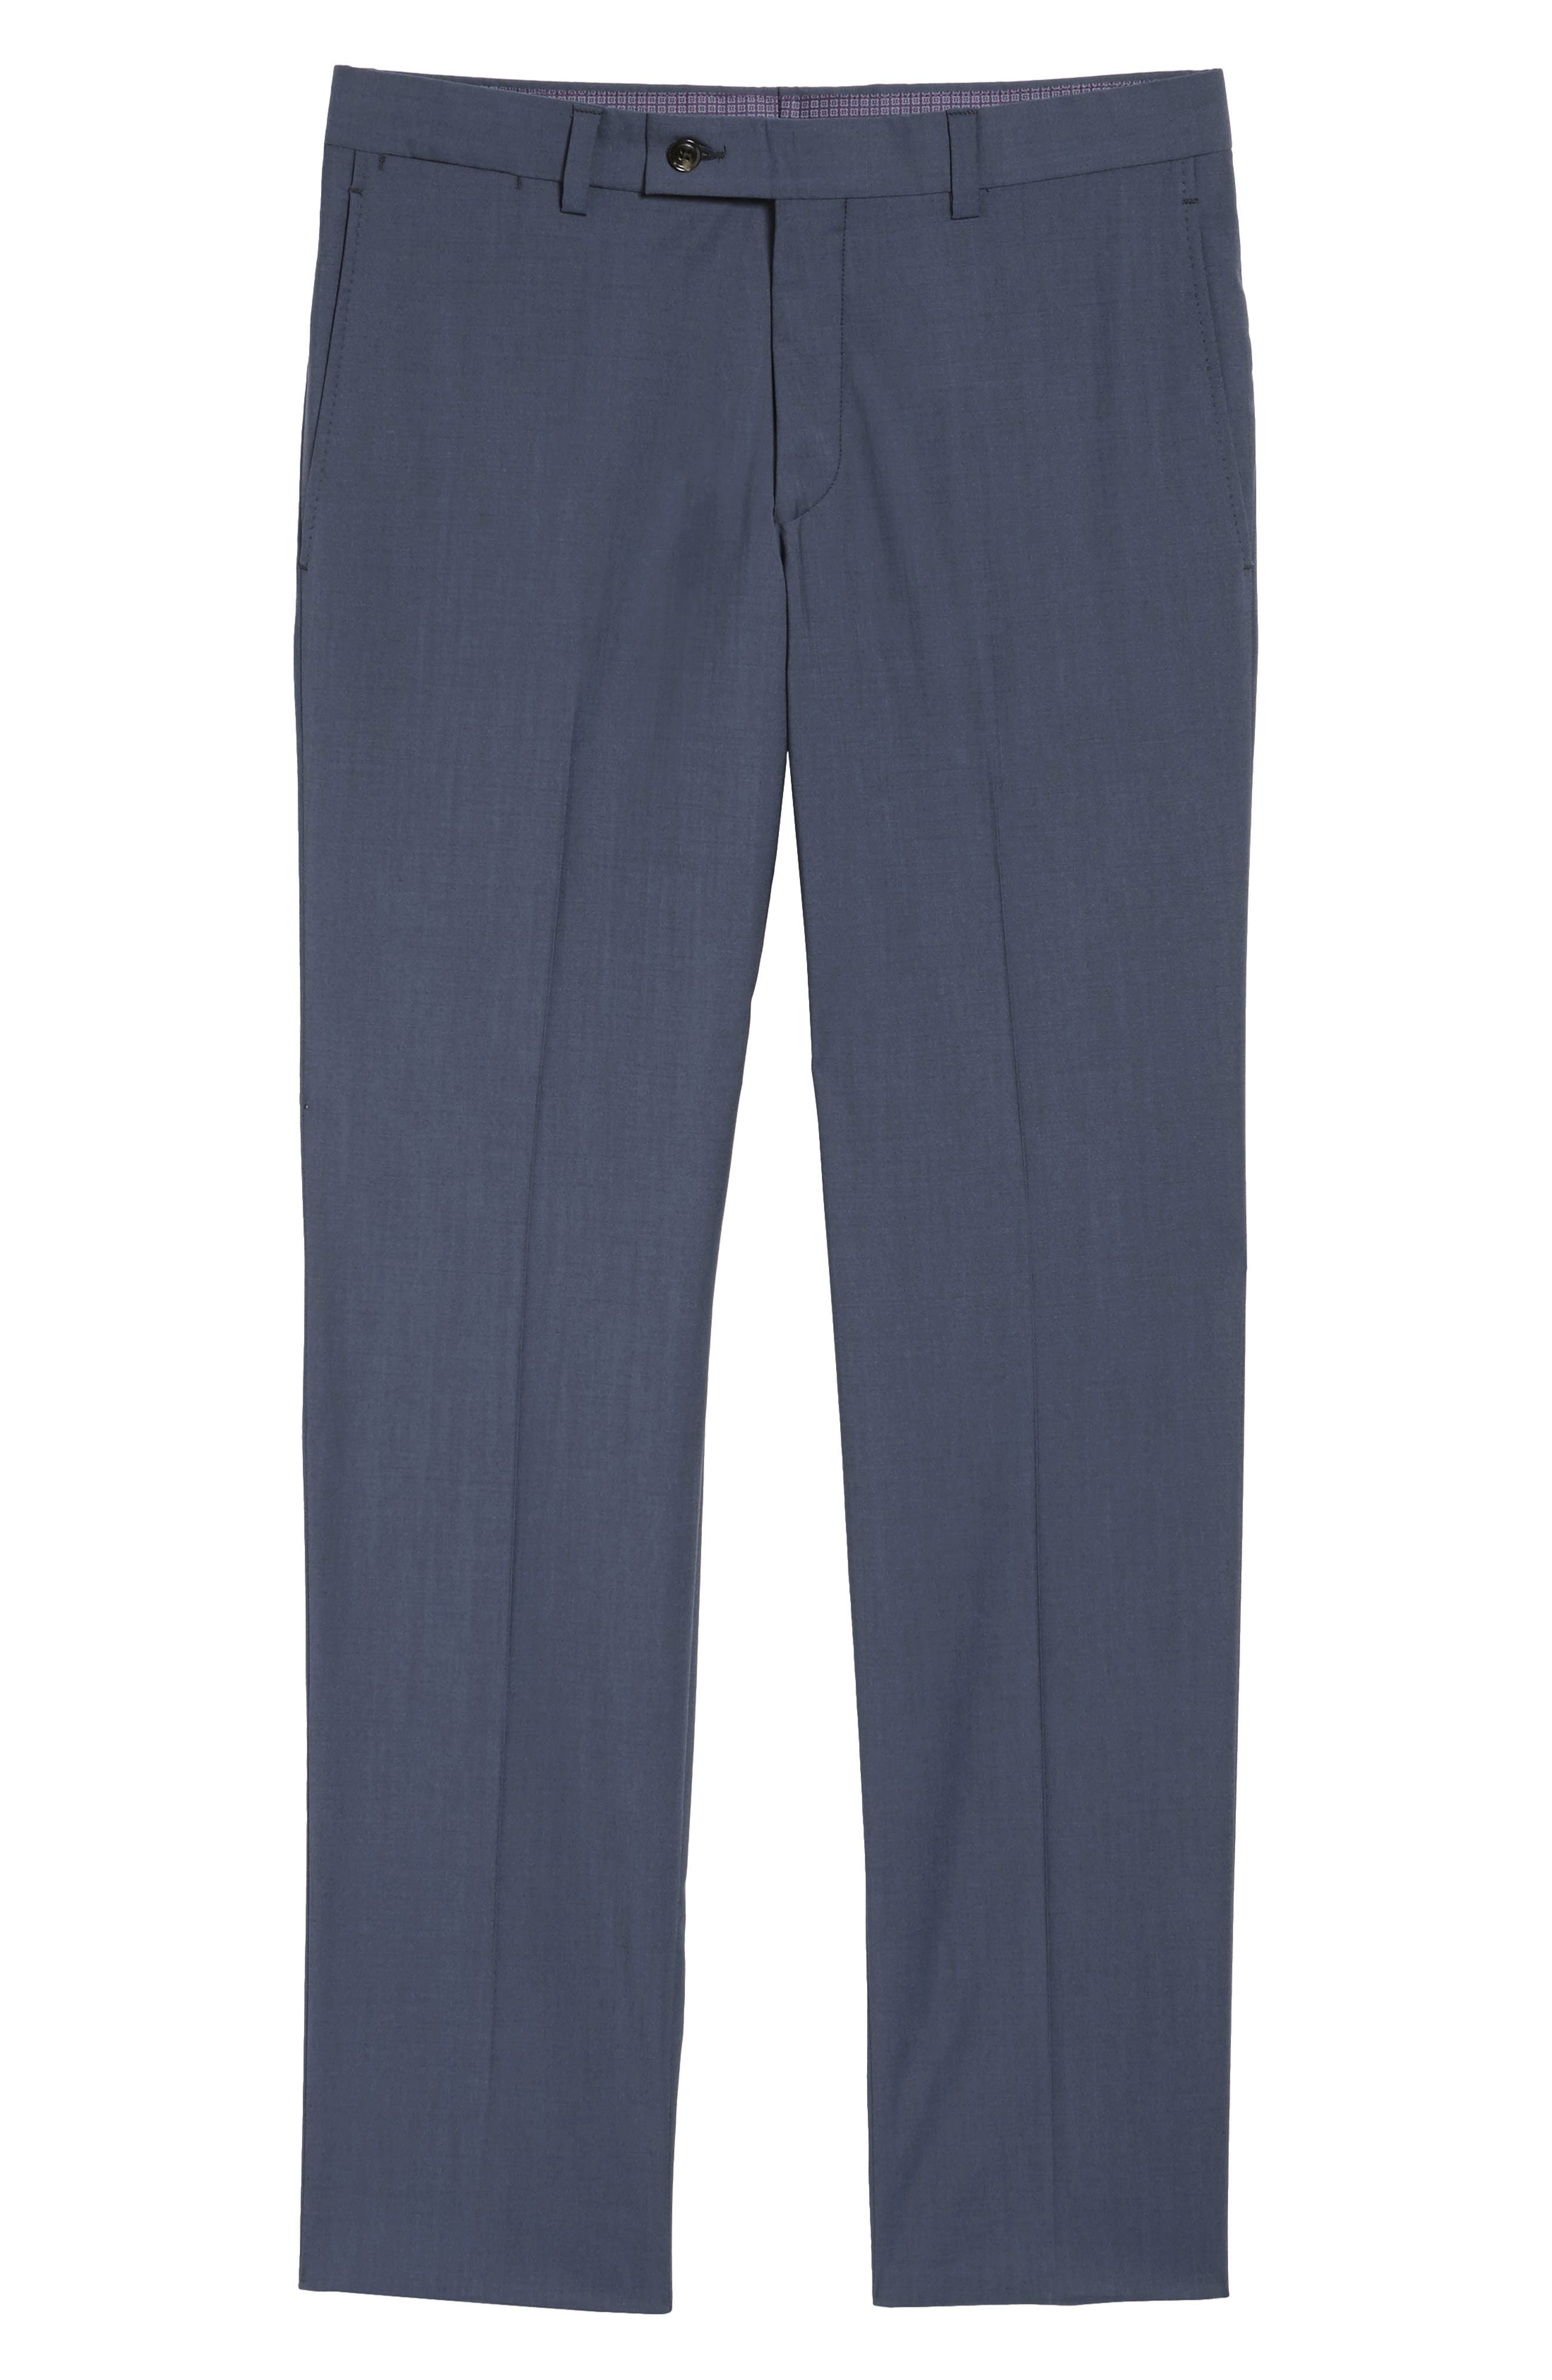 Jefferson Flat Front Stretch Wool Trousers,                             Alternate thumbnail 6, color,                             Blue